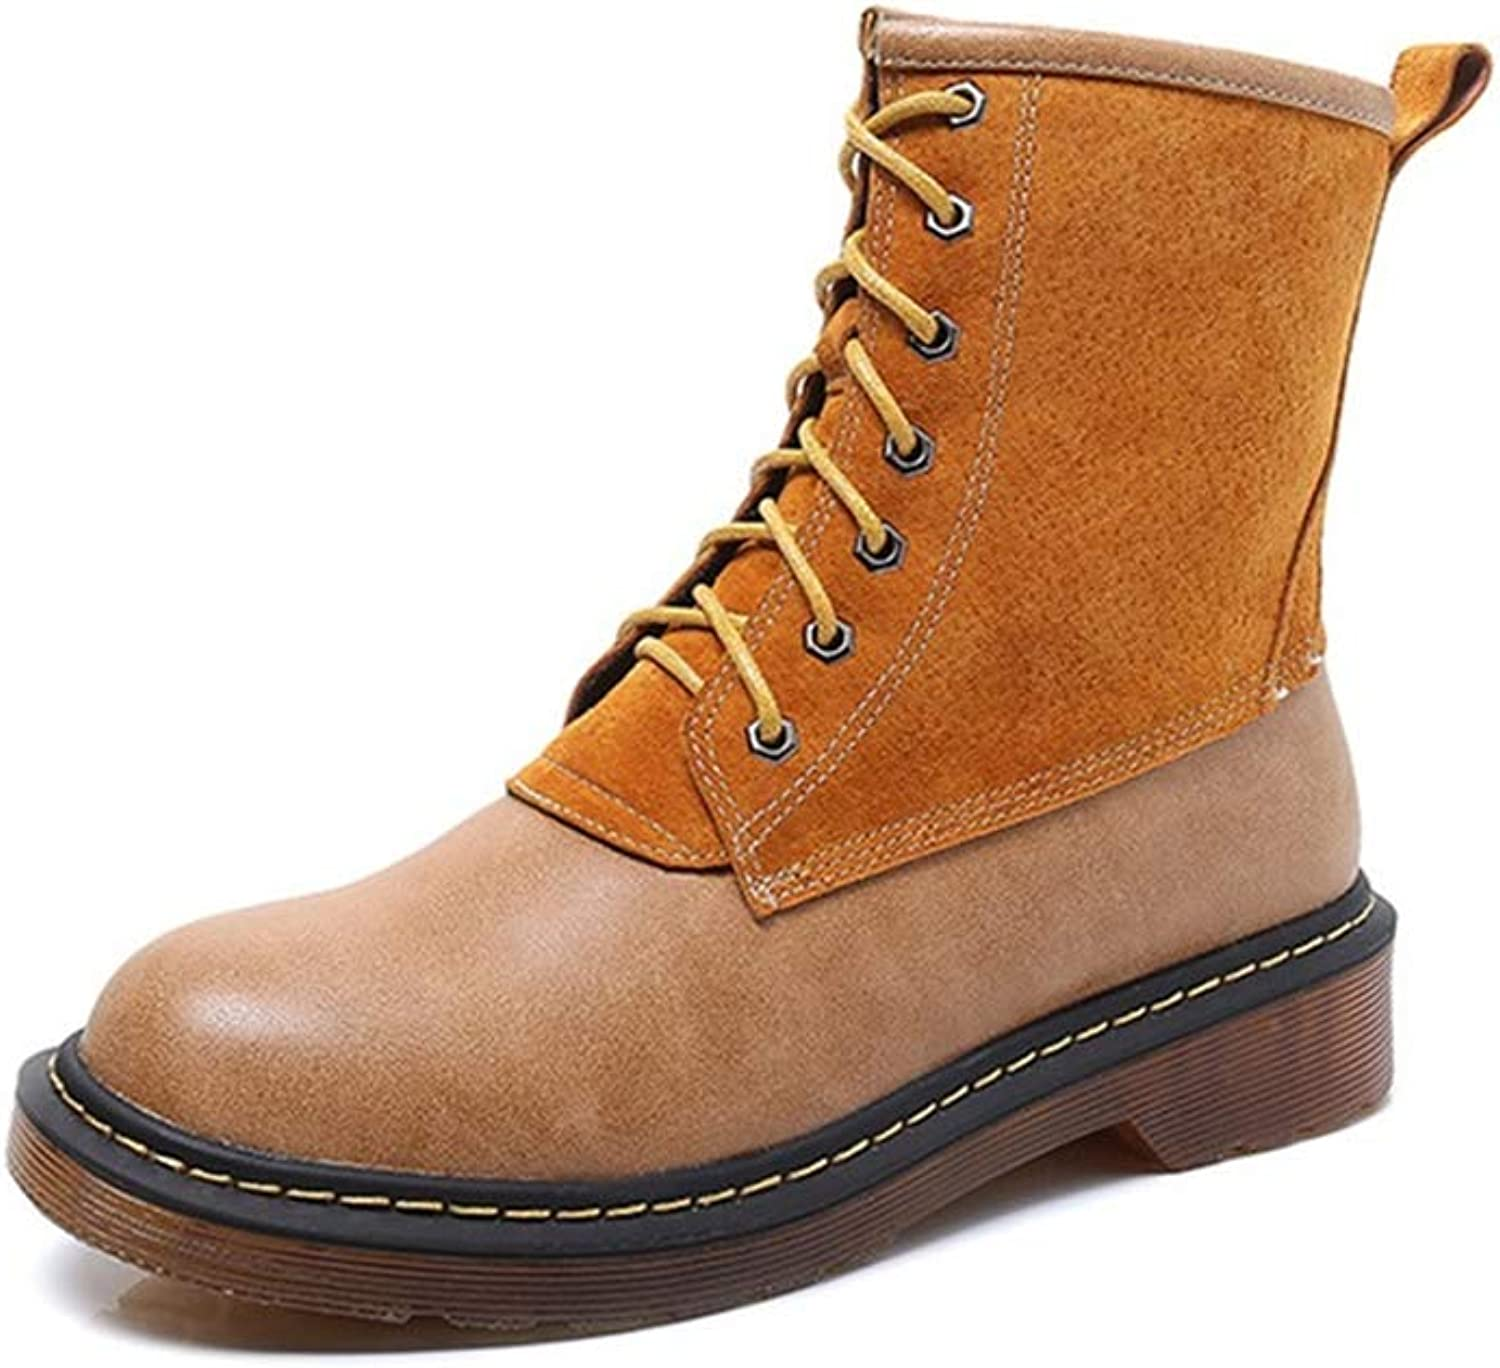 A-LING Women's Casual Lace Up Martin Short Round Head Boots